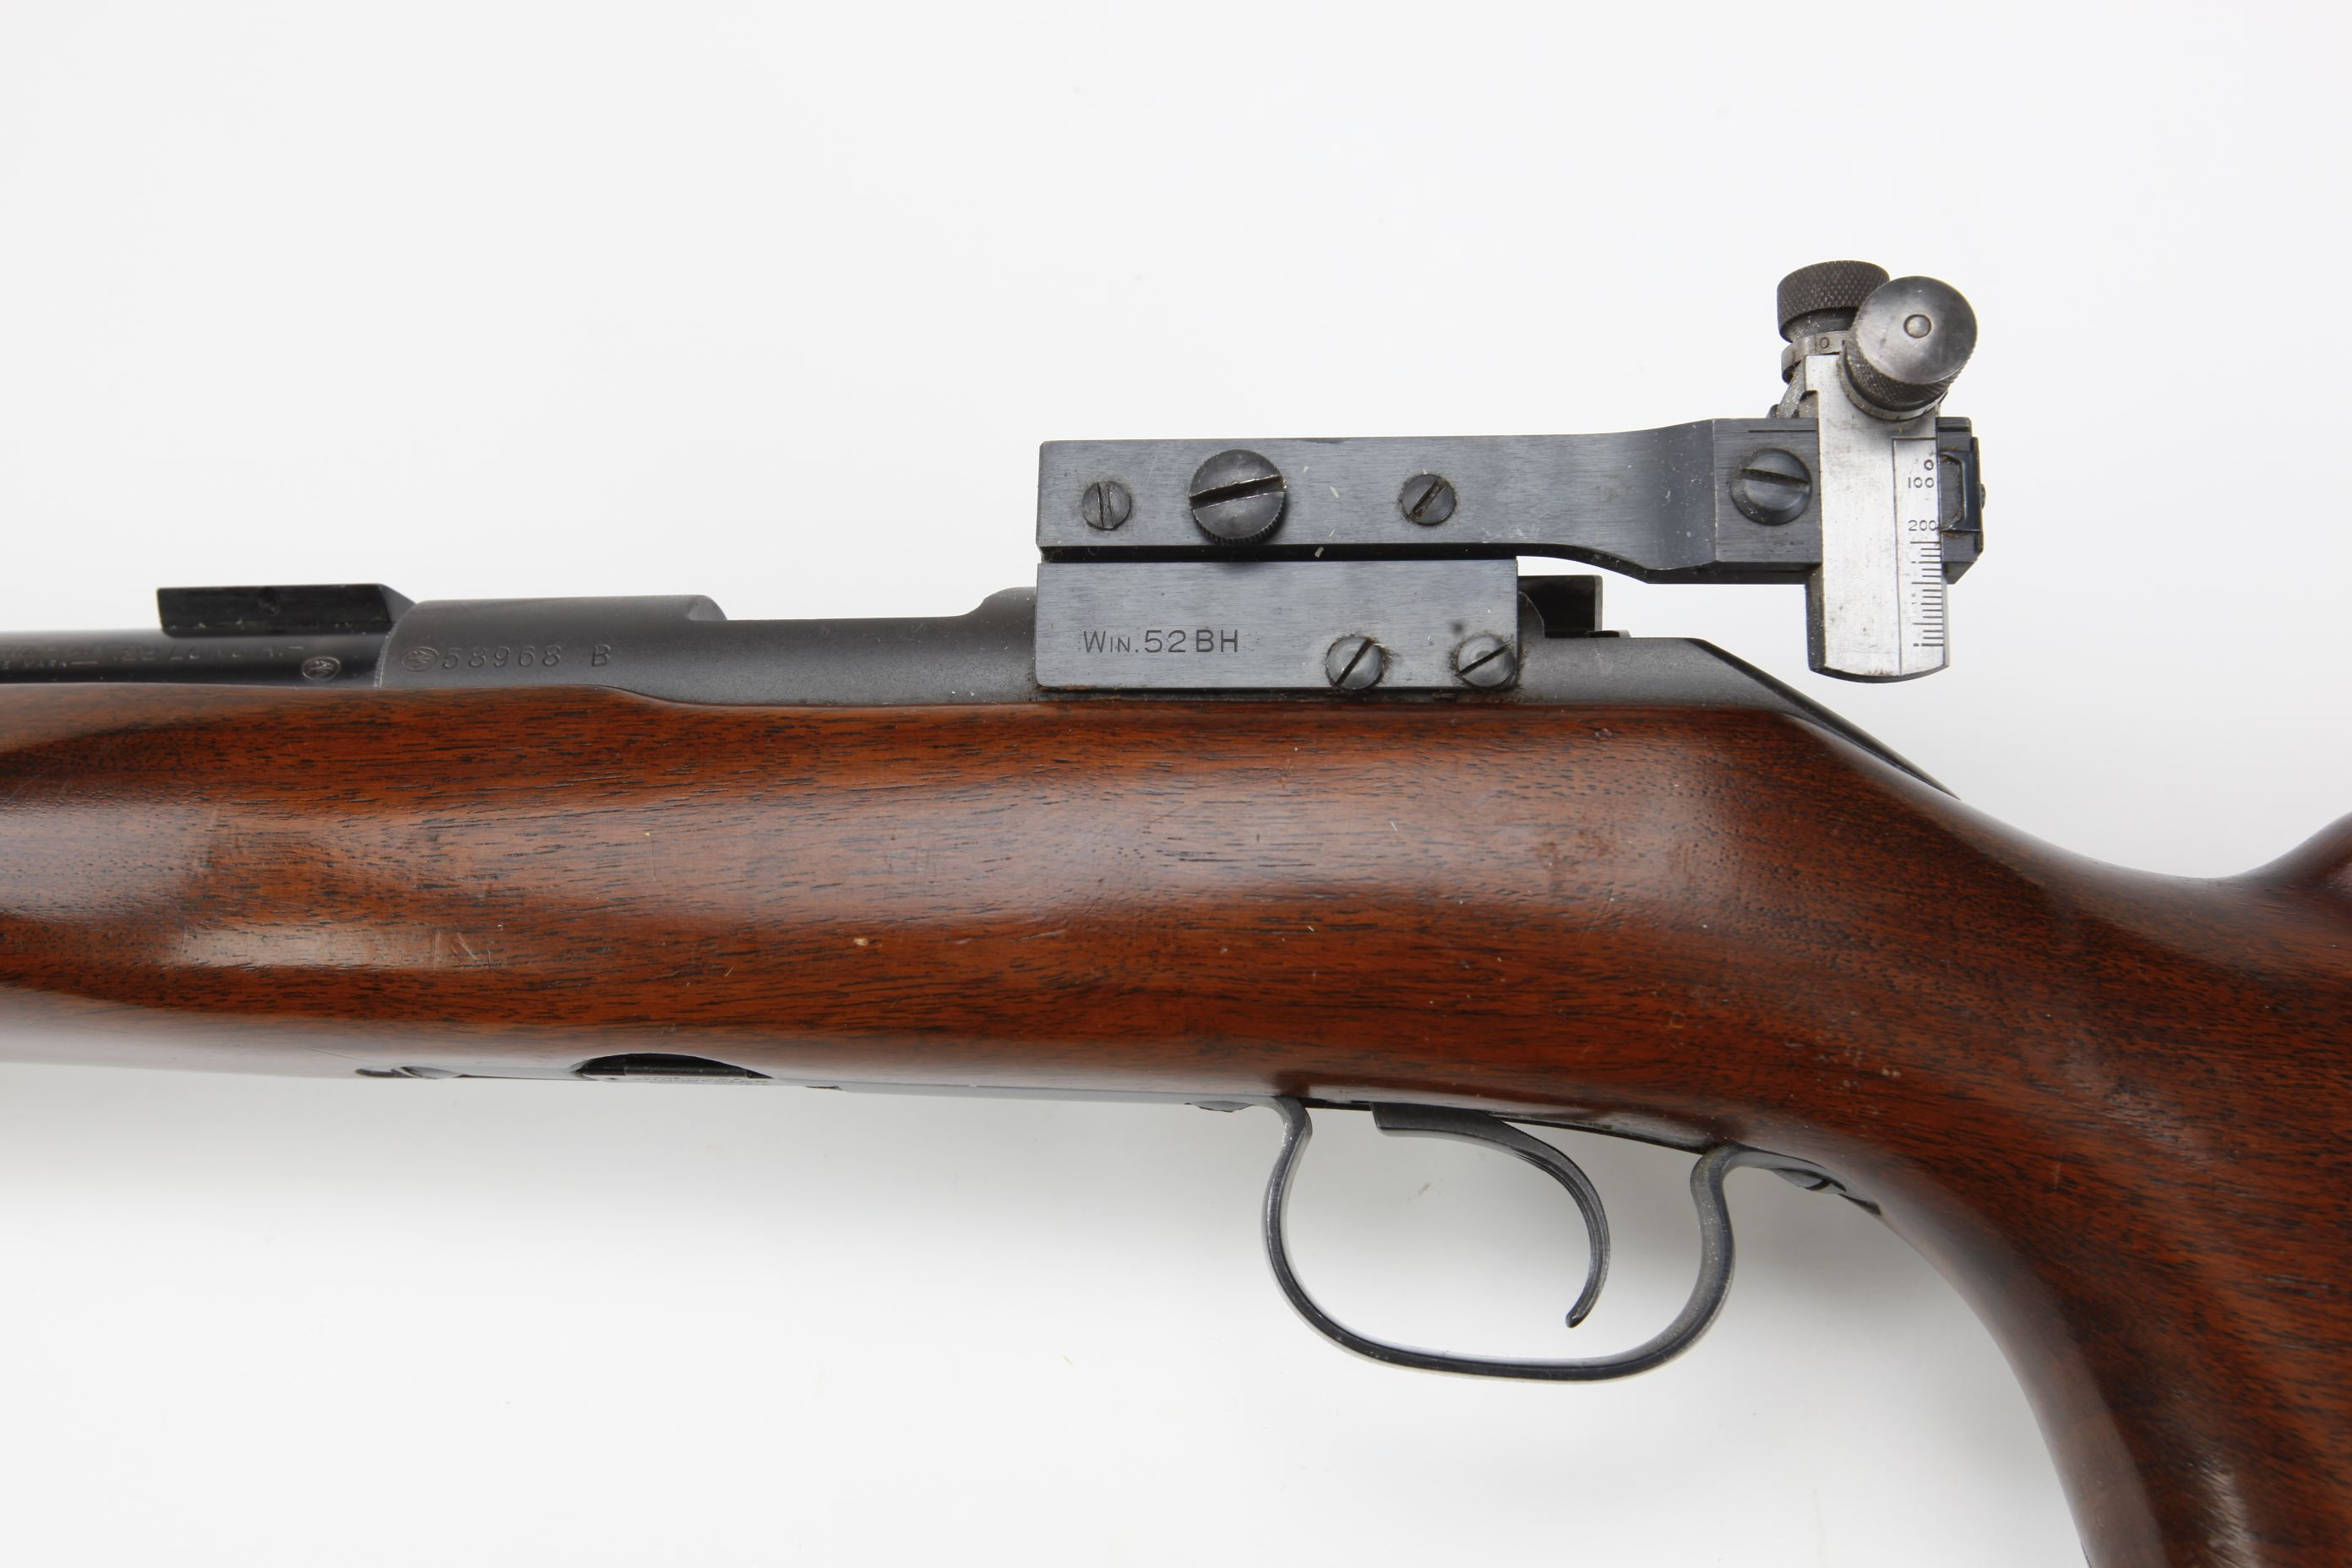 Winchester Model 52 B Bolt Action Rifle